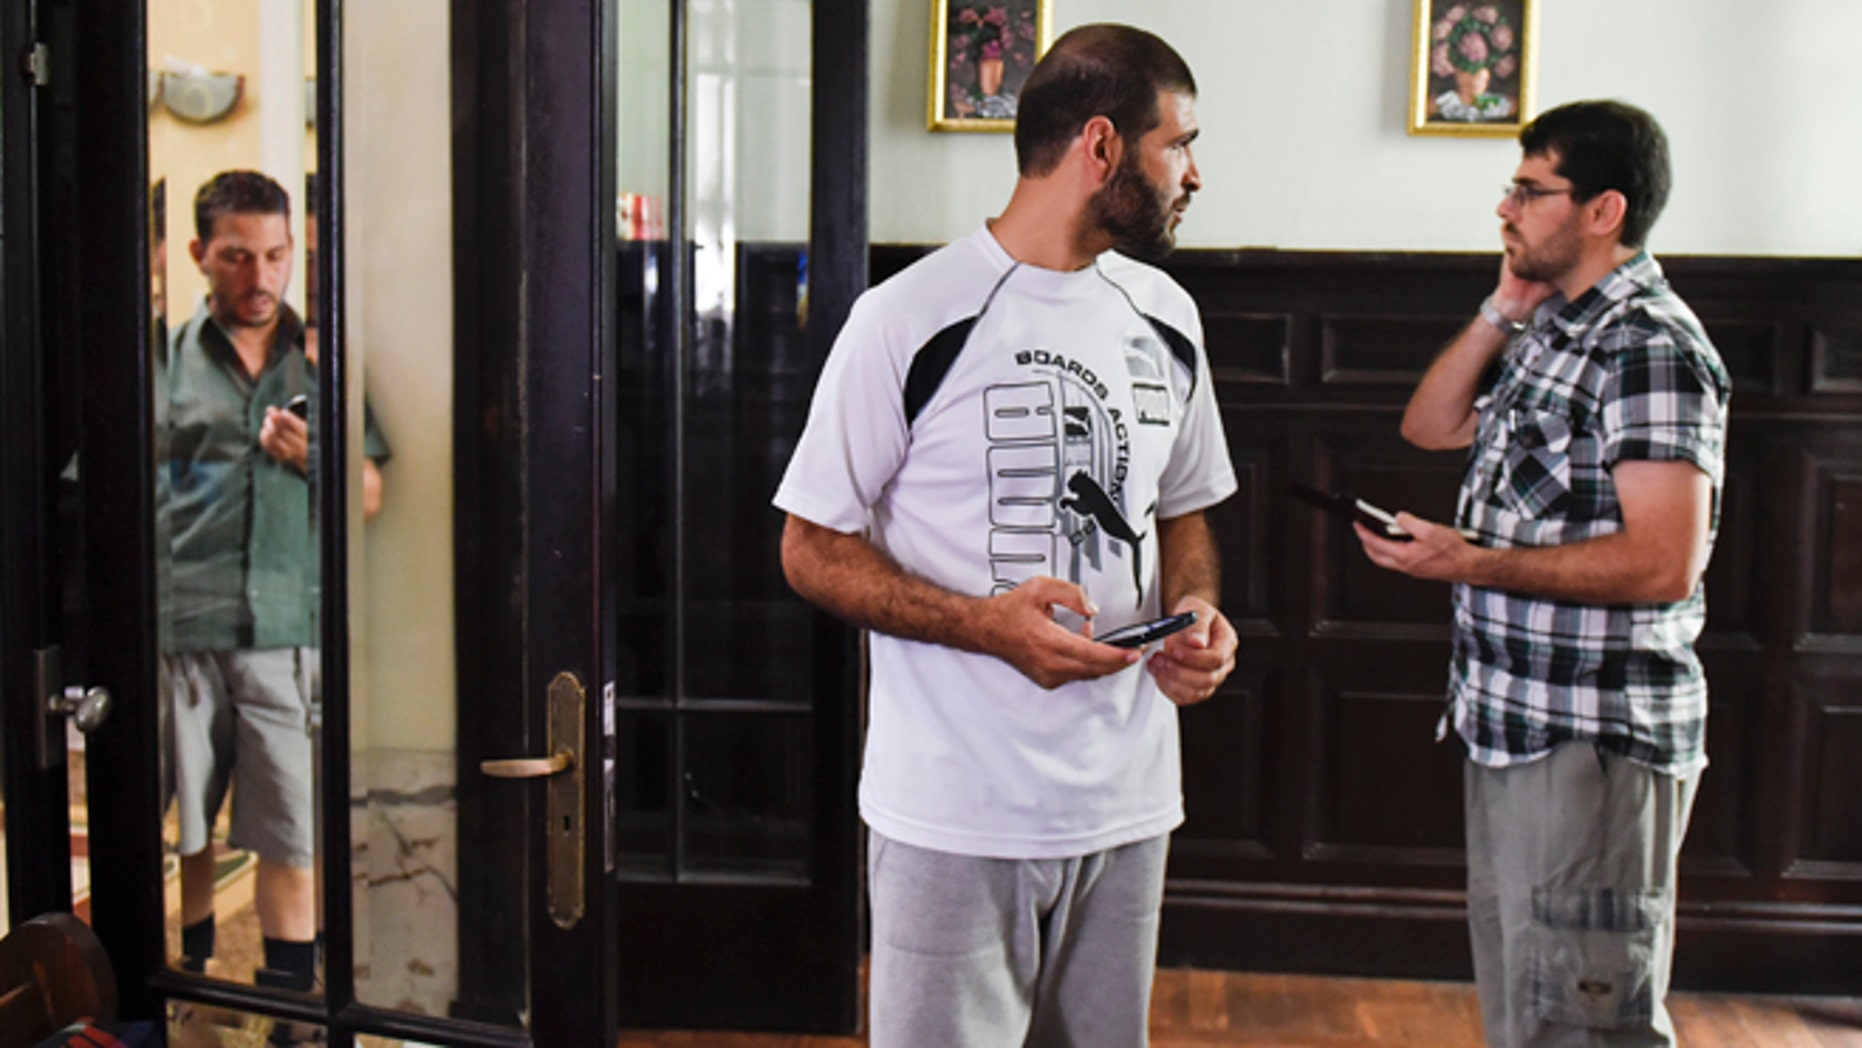 In this Feb. 24, 2015 photo, Adel bin Muhammad El Ouerghi, from Tunisia, left, Ali Husain Shaaban, from Syria, center, and Omar Abdelahdi Faraj, from Syria, right, stand inside the home they share with three other former Guantanamo detainees in Montevideo, Uruguay. Like hundreds of others at Guantanamo, the men, who were arrested in 2002, were held without charge. The U.S. released them because officials determined that they should no longer be considered a threat. (AP Photo/Matilde Campodonico)